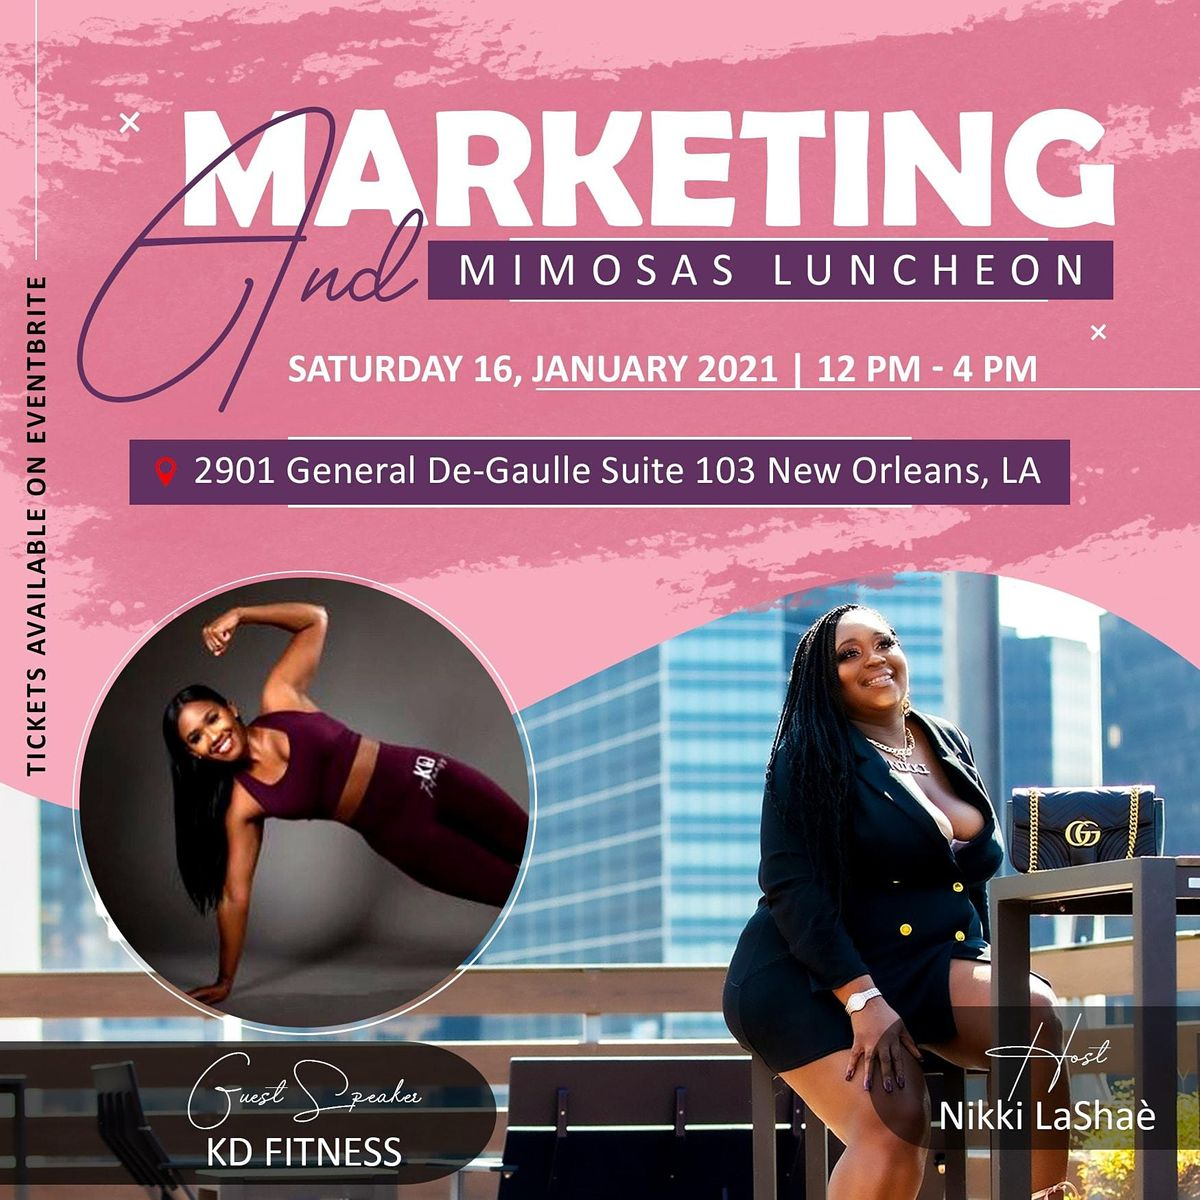 Marketing & Mimosas Luncheon, 16 January | Event in New Orleans | AllEvents.in